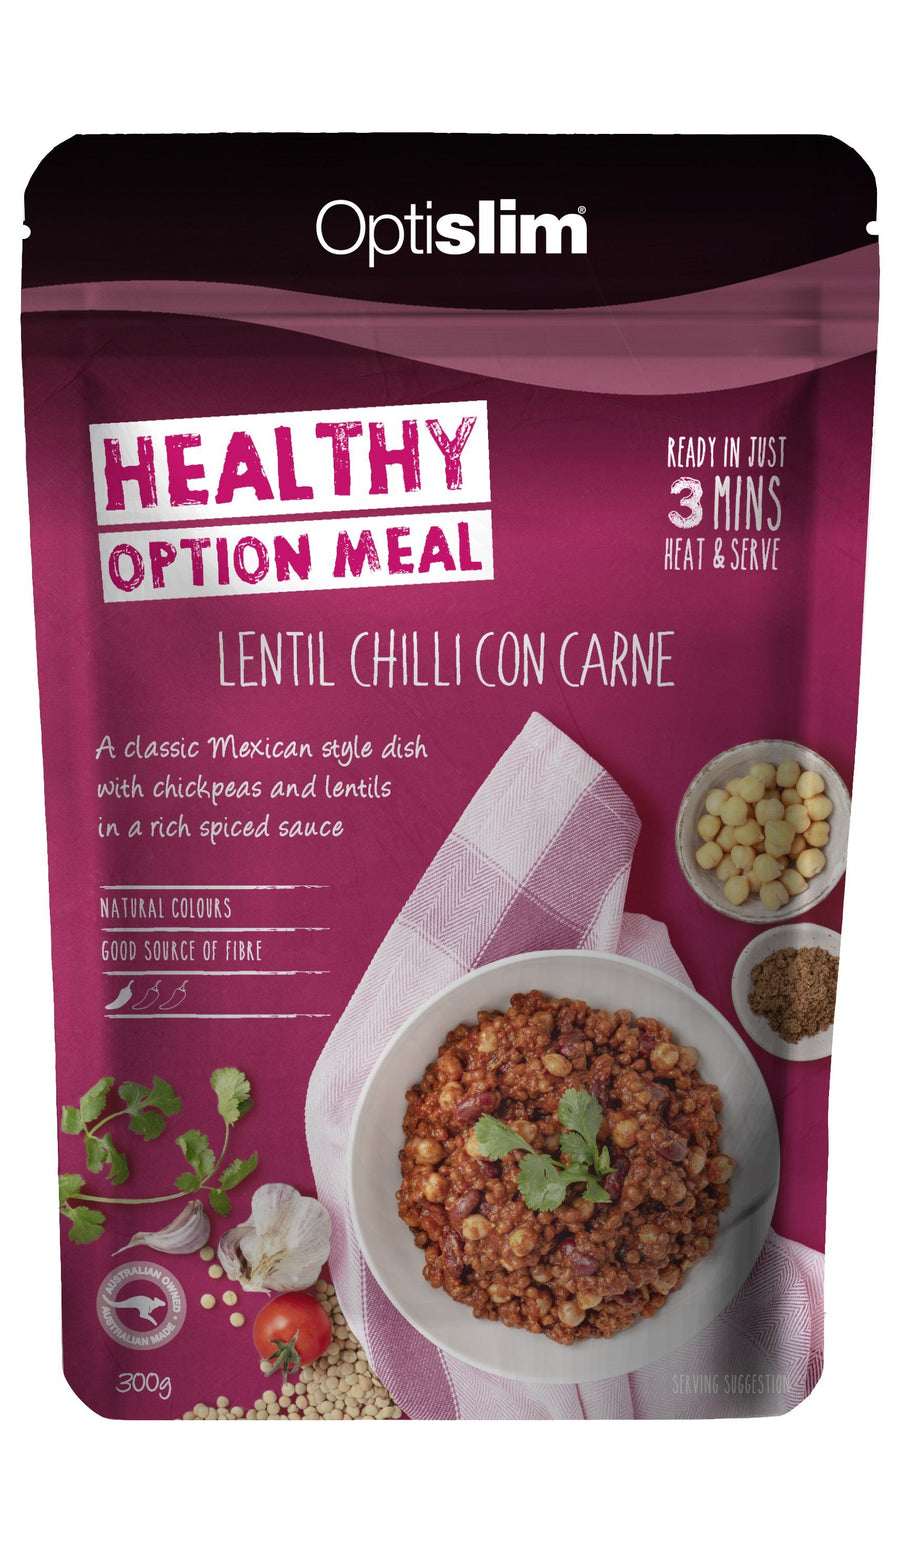 Healthy Option Meal Lentil Chilli Con Carne New! (Vegetarian) Weight Loss OptiSlim